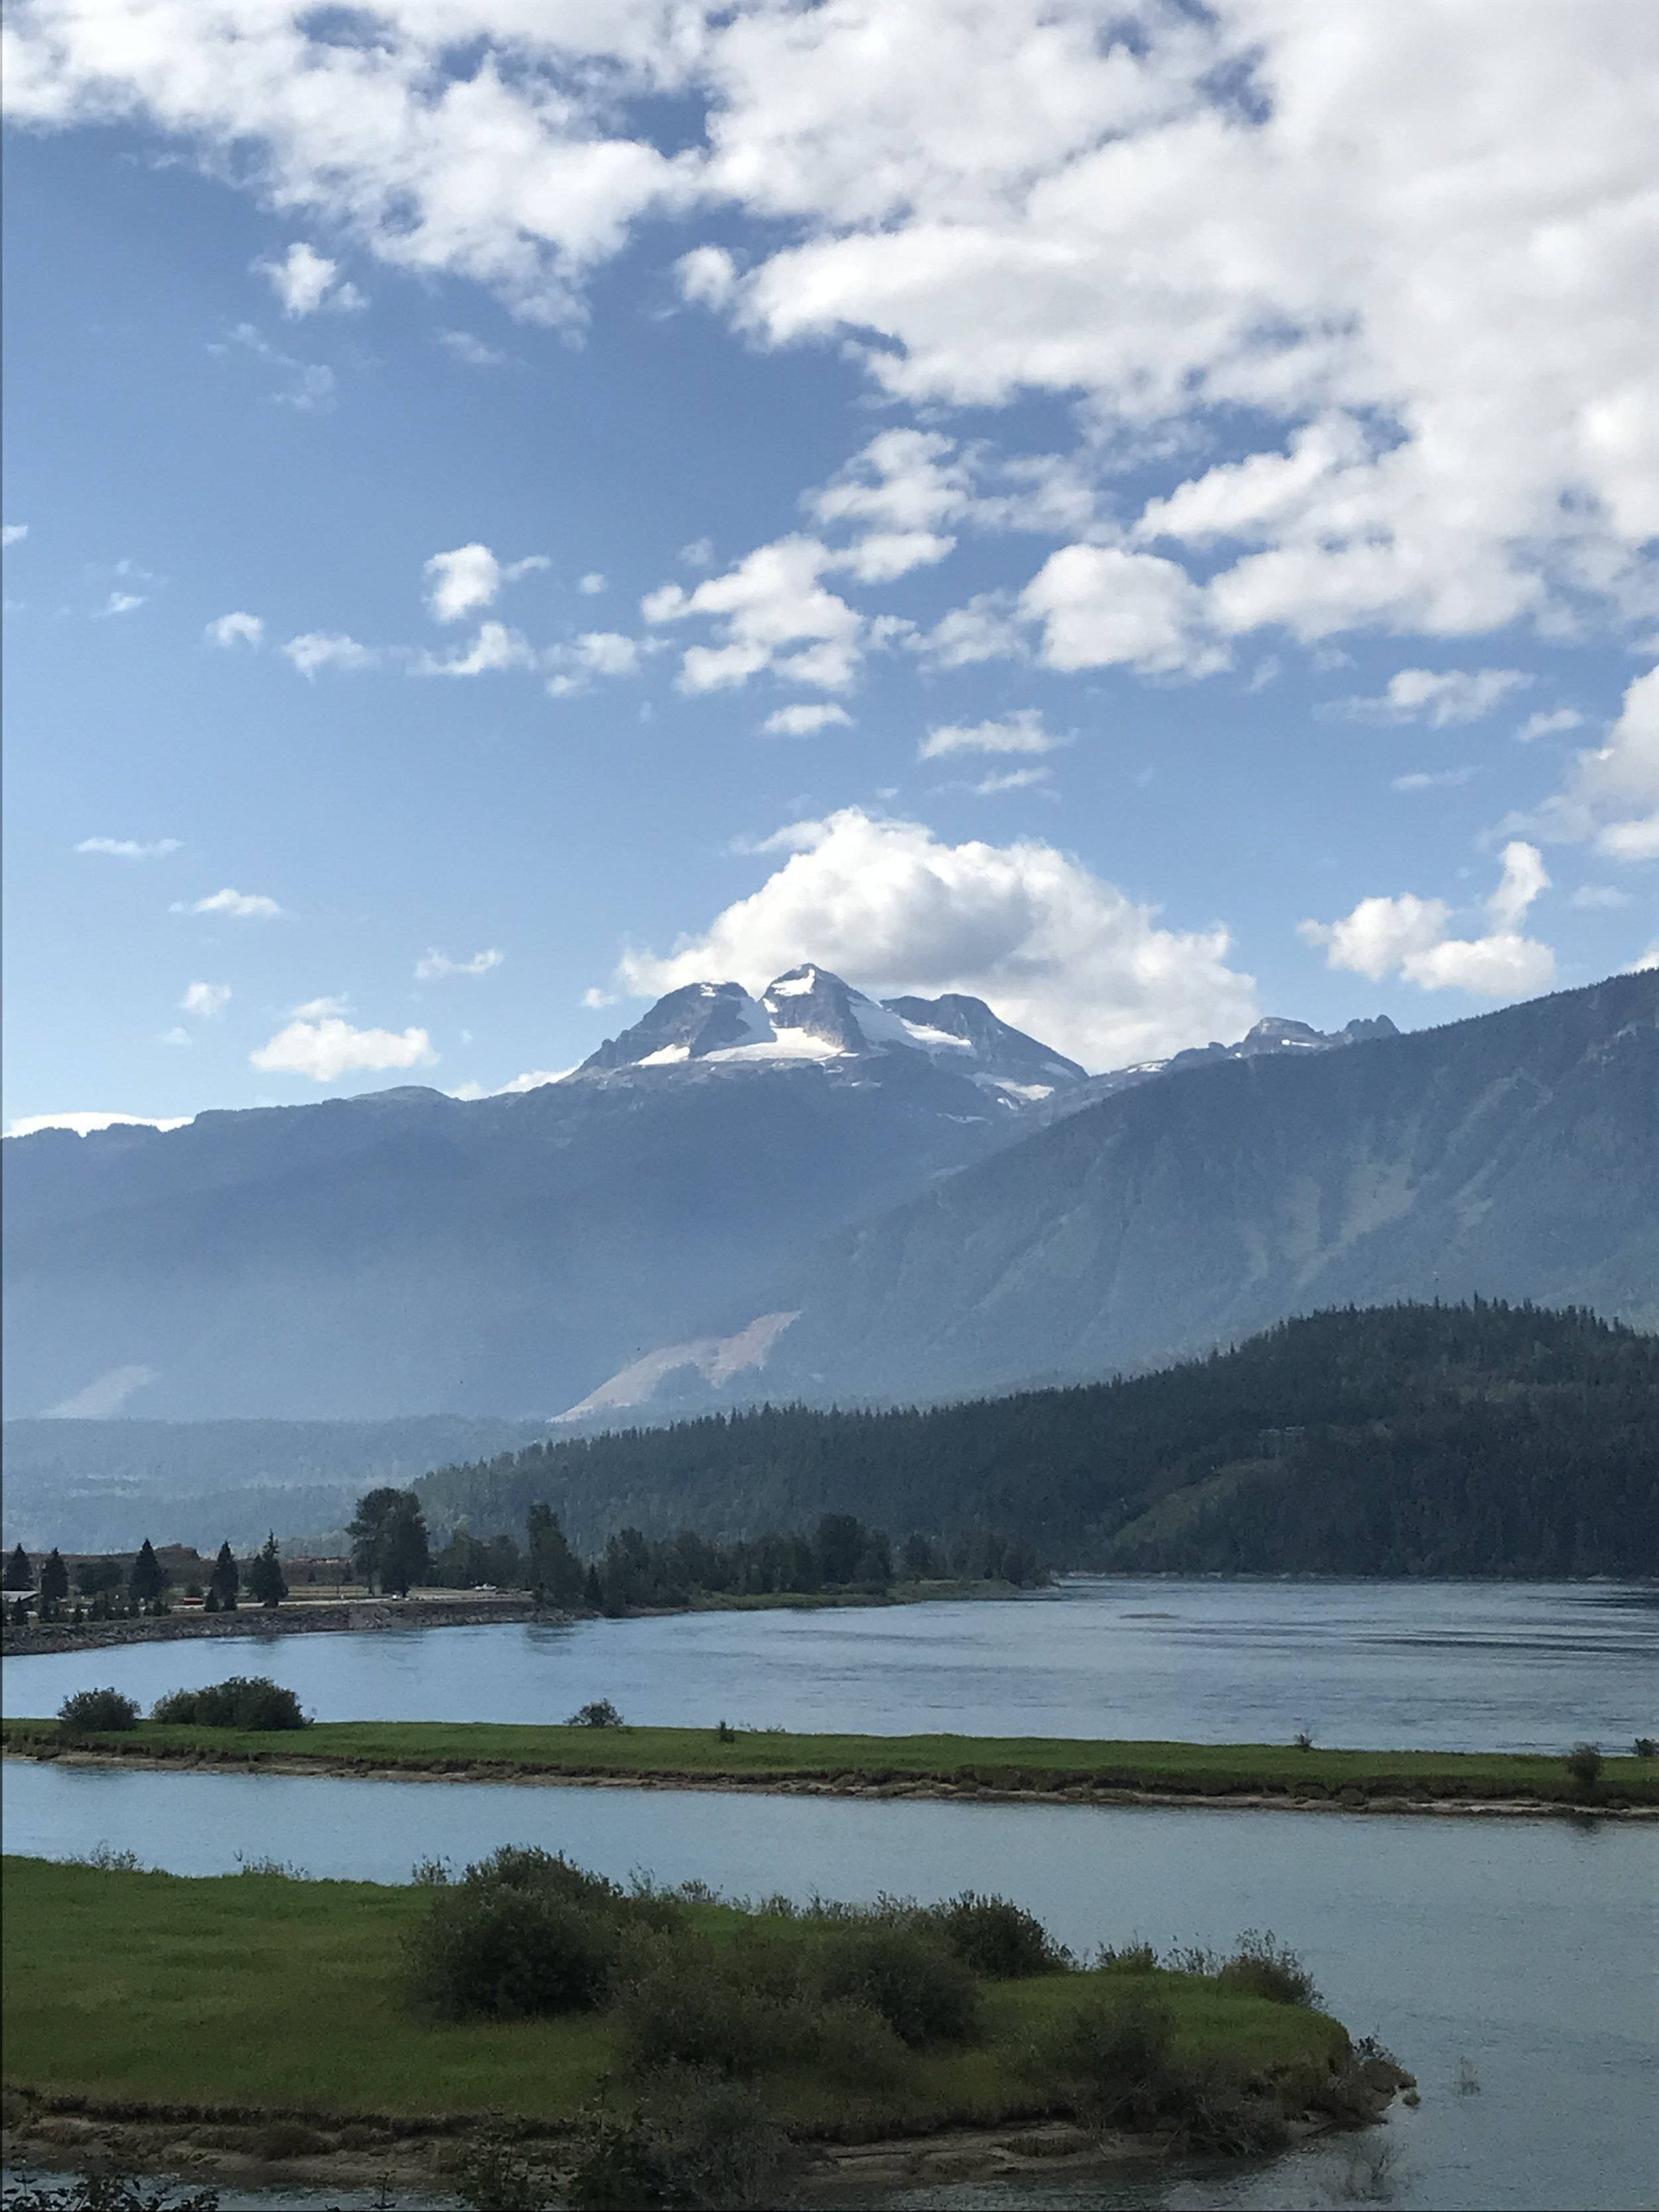 This beauty is a highlight of the Revelstoke landscape.